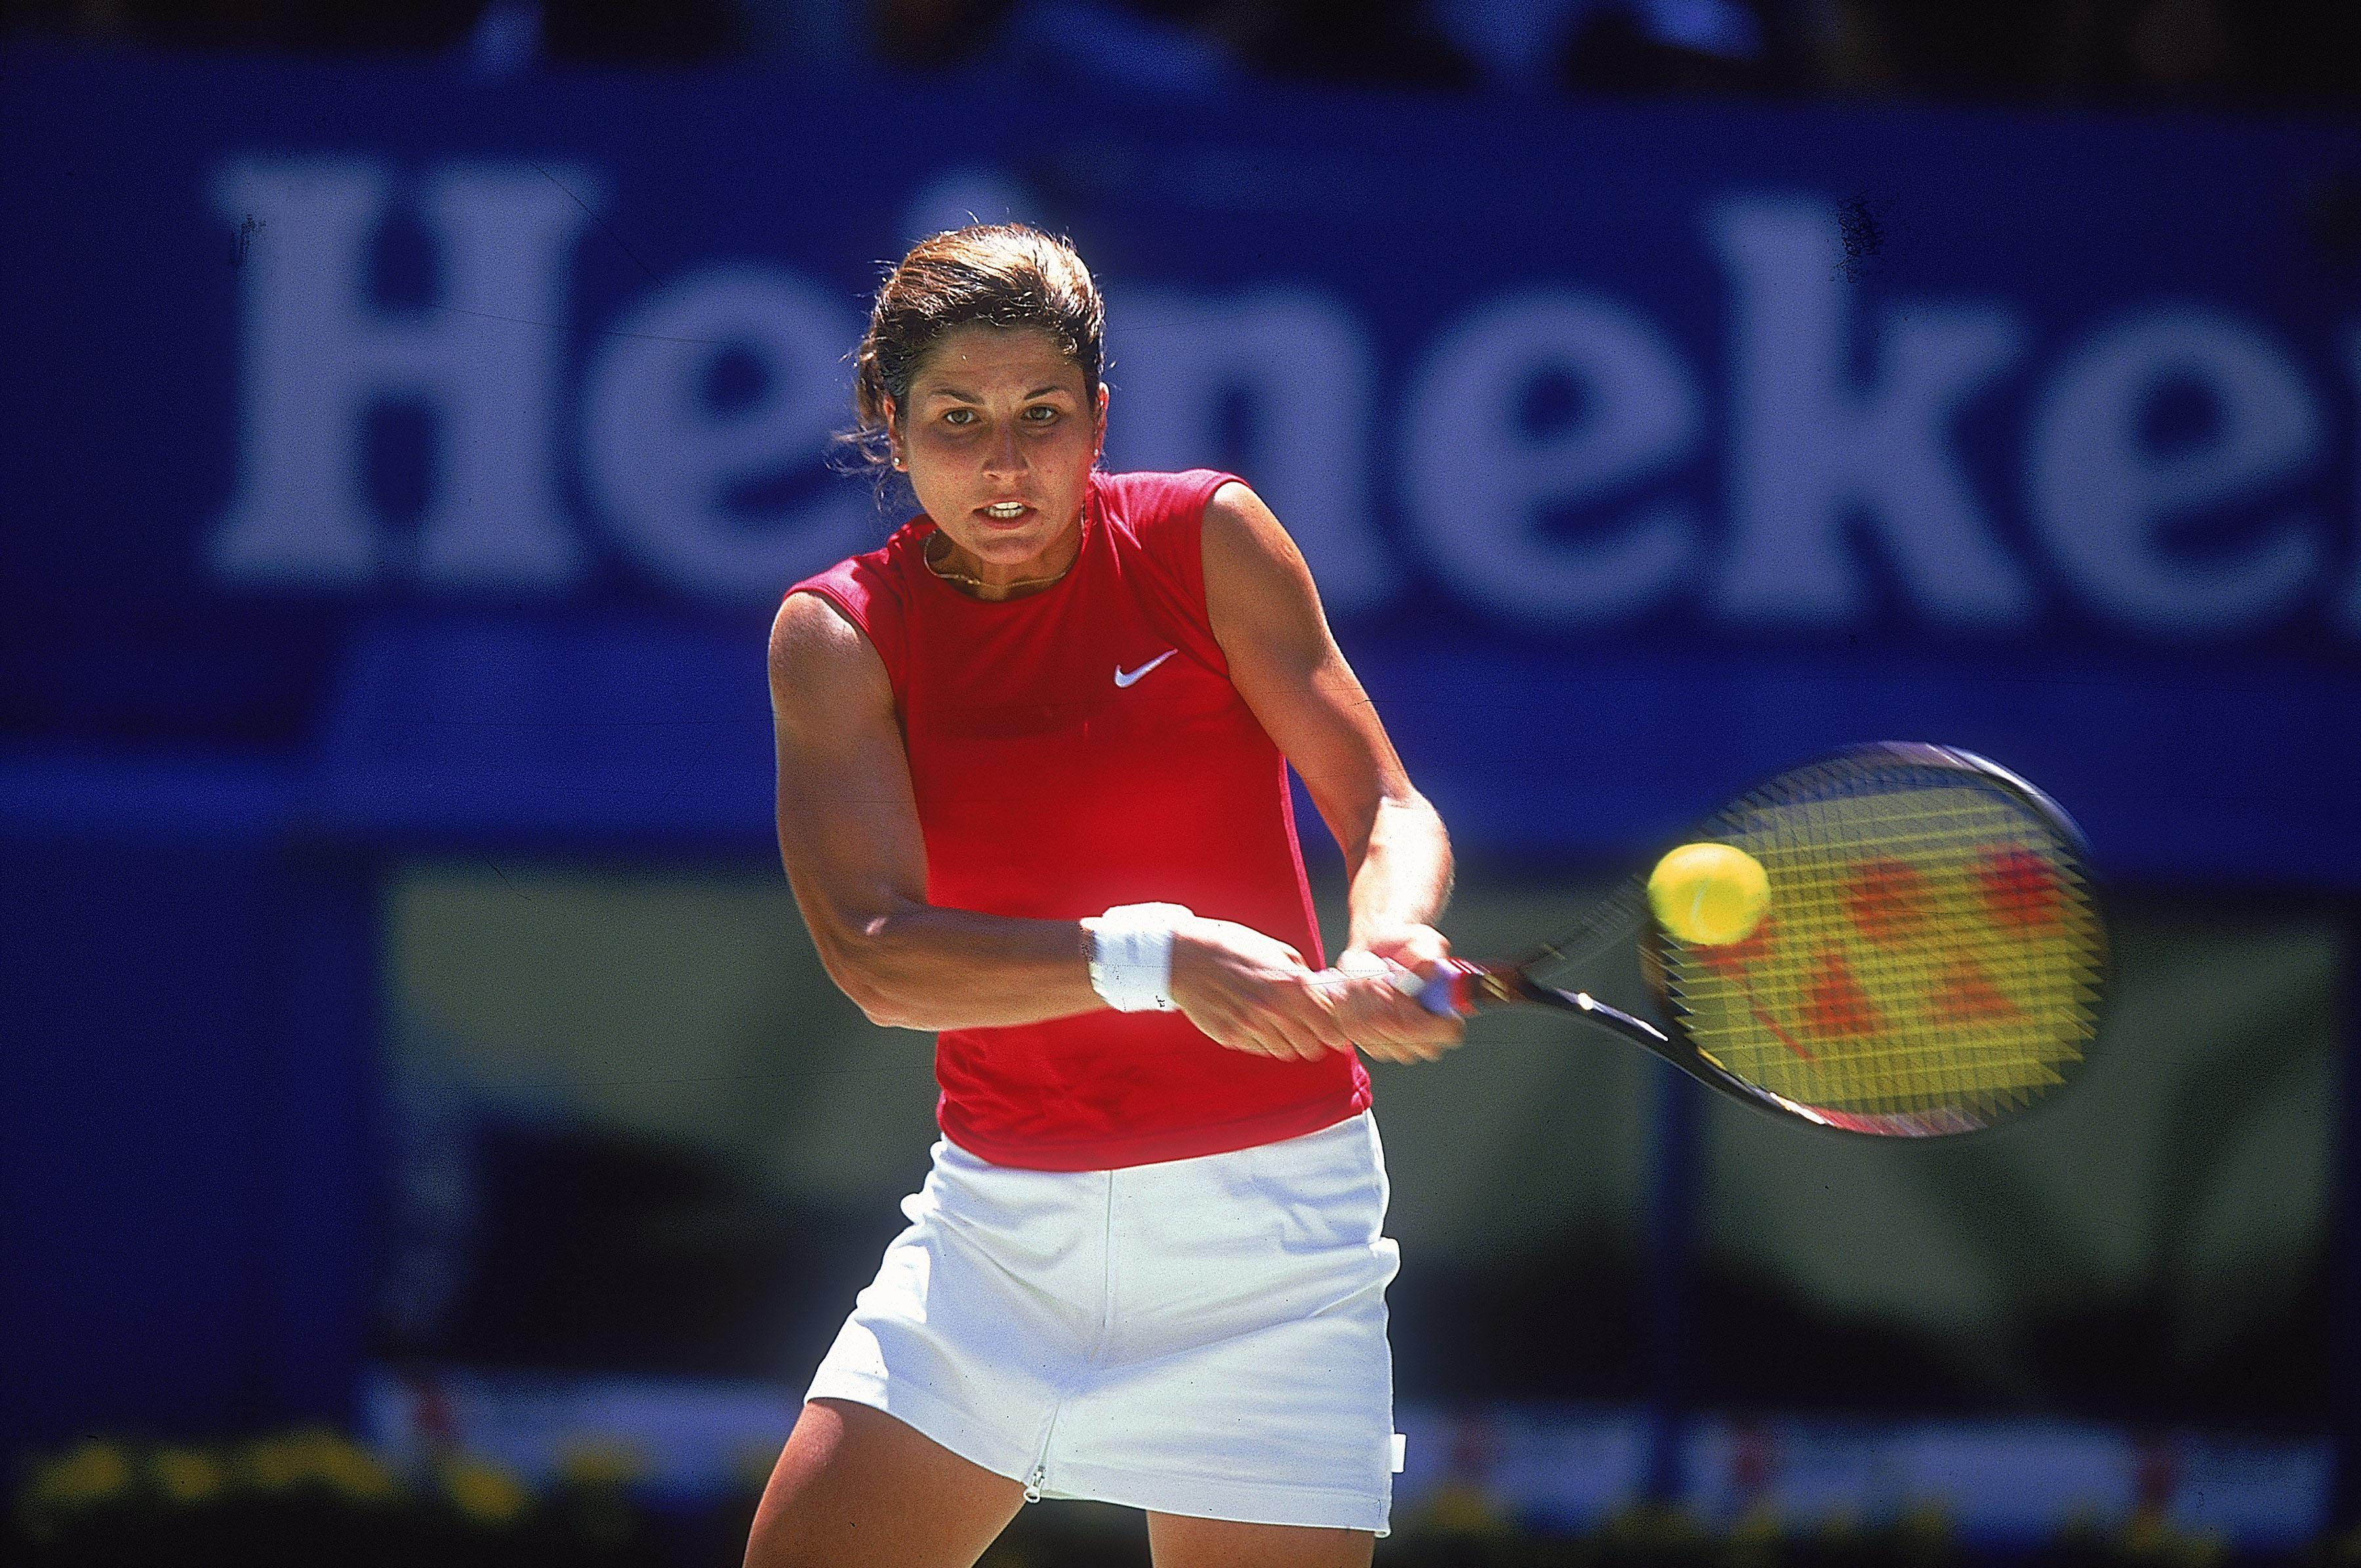 Mirka in action during the Second Round of the Australian Open in 2001